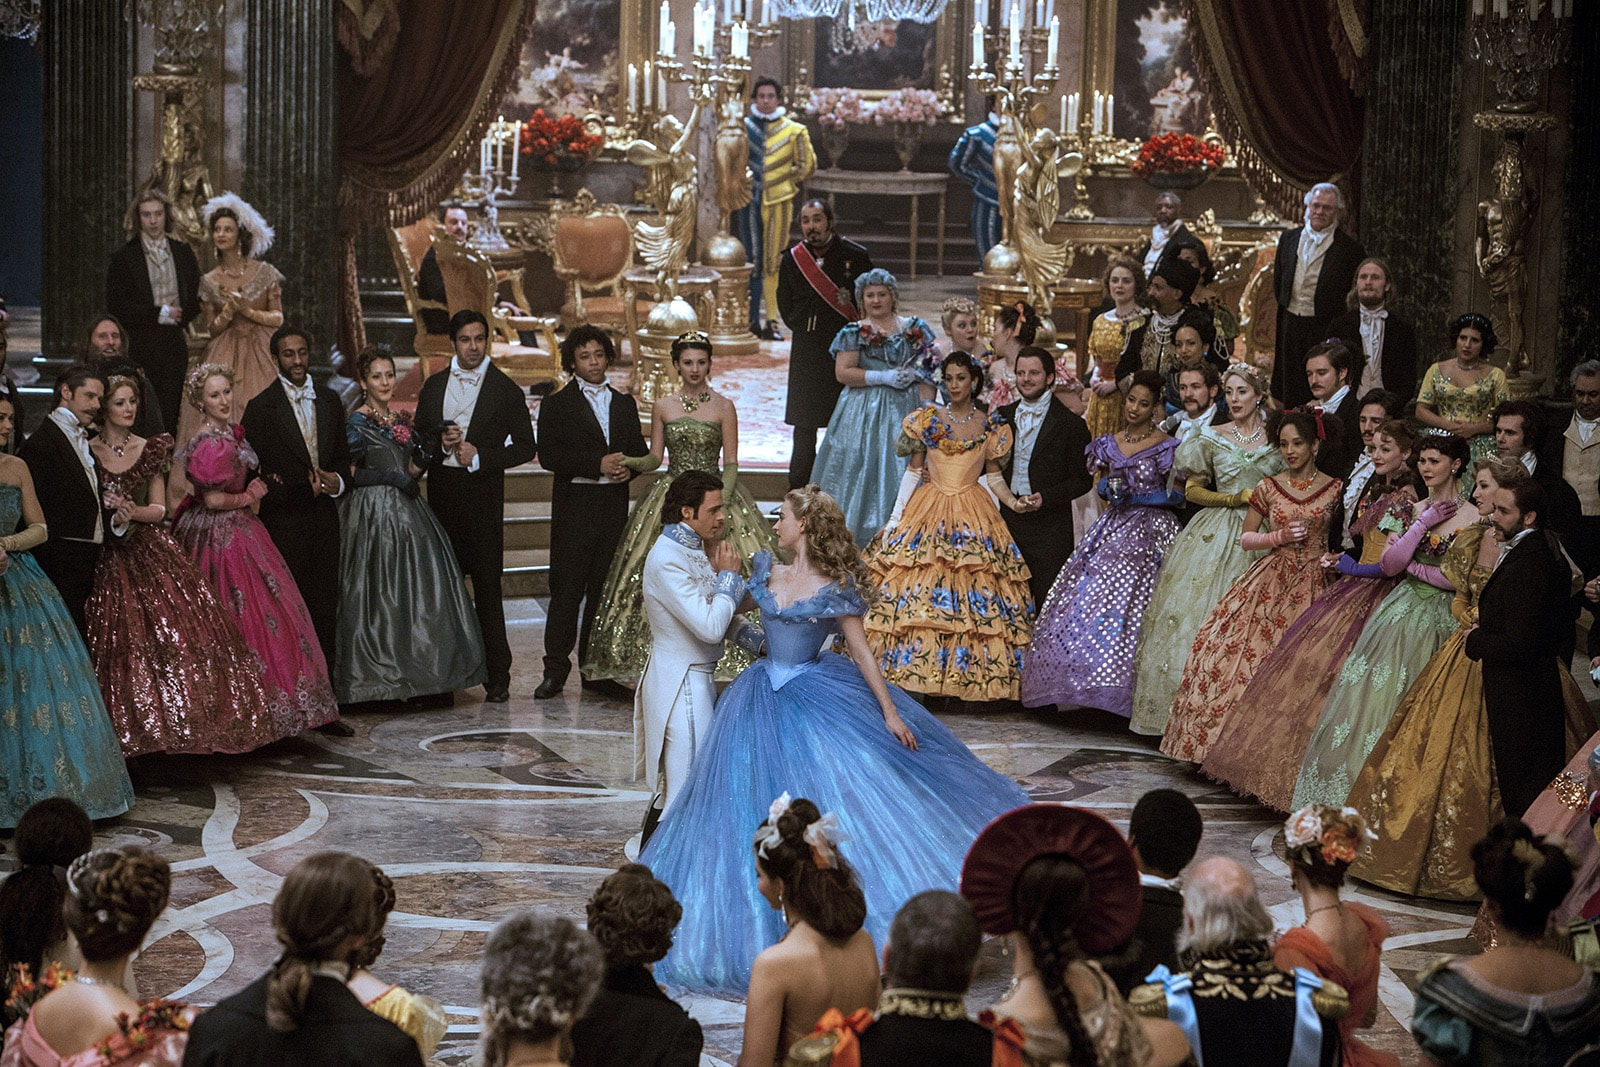 cendrillon kenneth branagh image